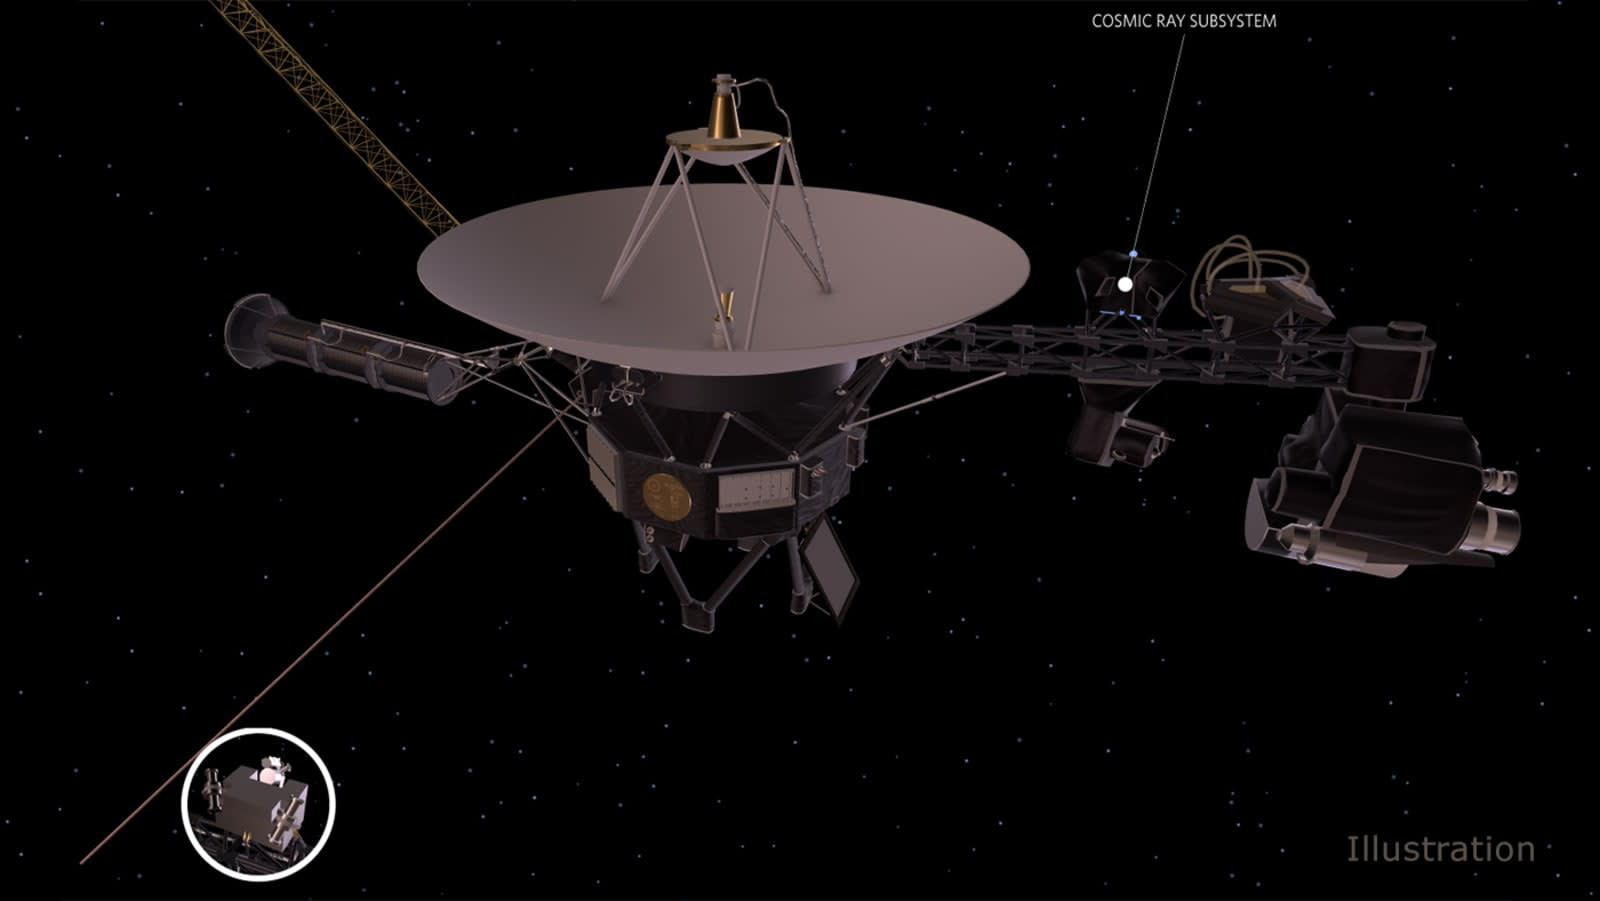 NASA fights to keep the Voyager probes running after four decades